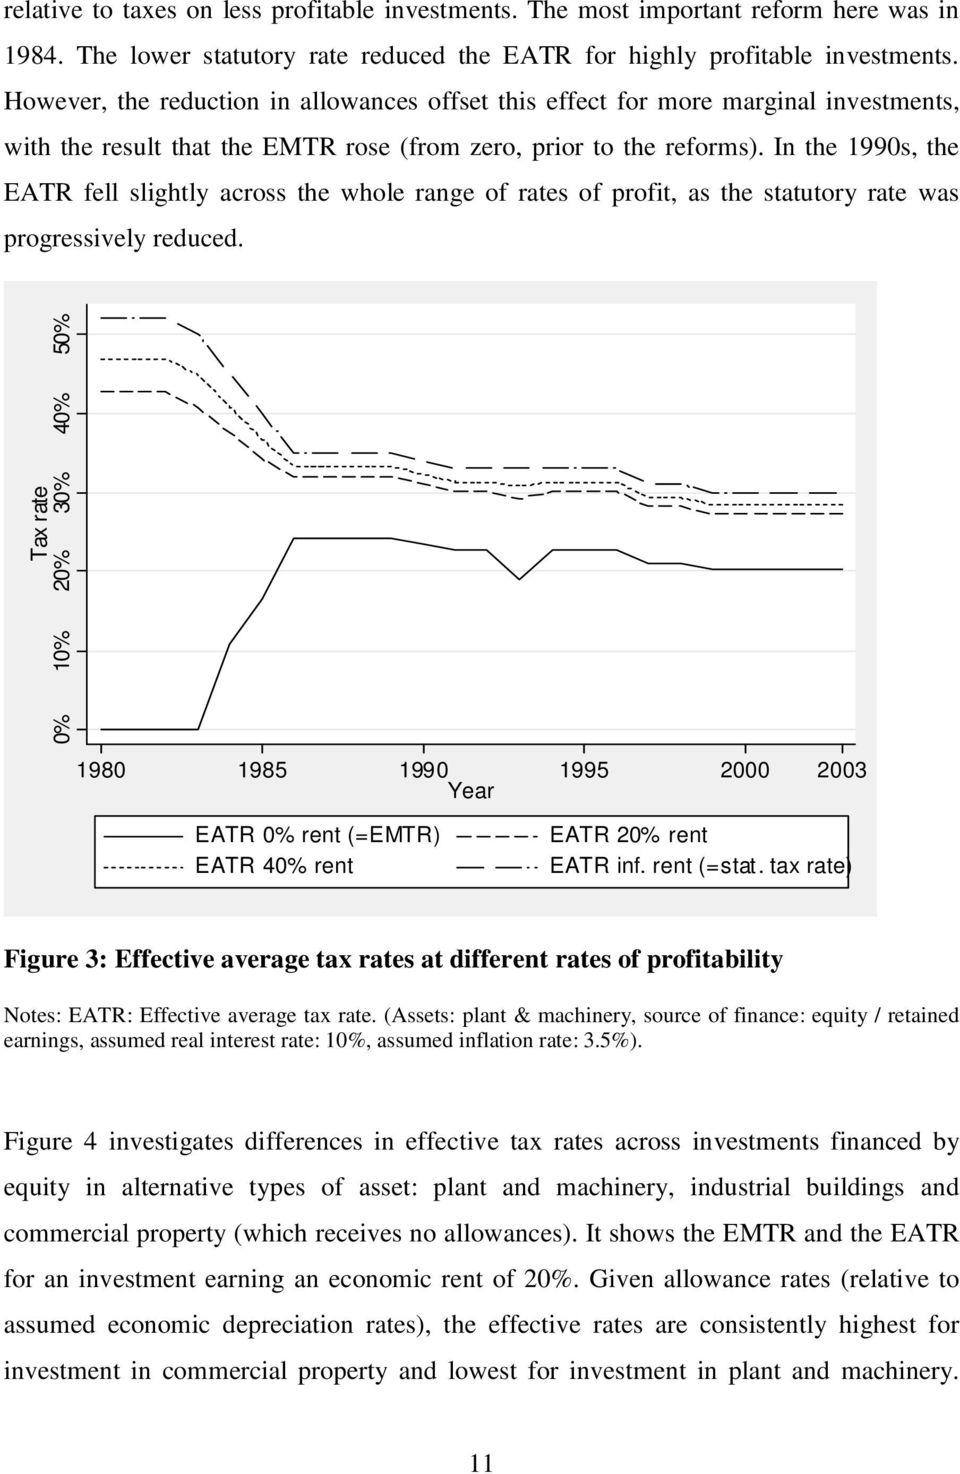 In the 1990s, the EATR fell slightly across the whole range of rates of profit, as the statutory rate was progressively reduced.